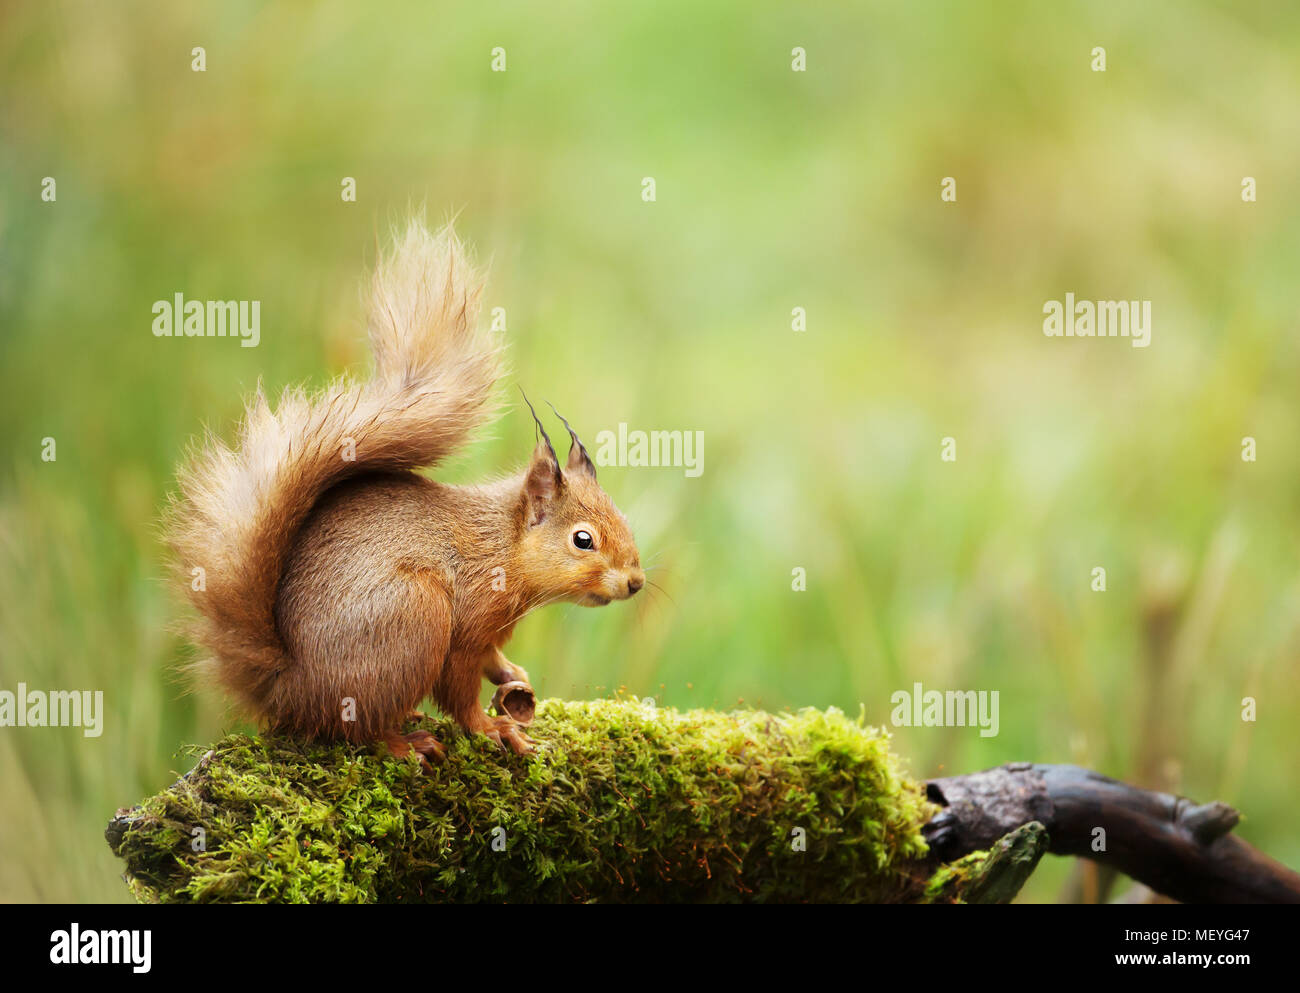 Red squirrel (Sciurus Vulgaris) sitting on a mossy log, England, UK. - Stock Image